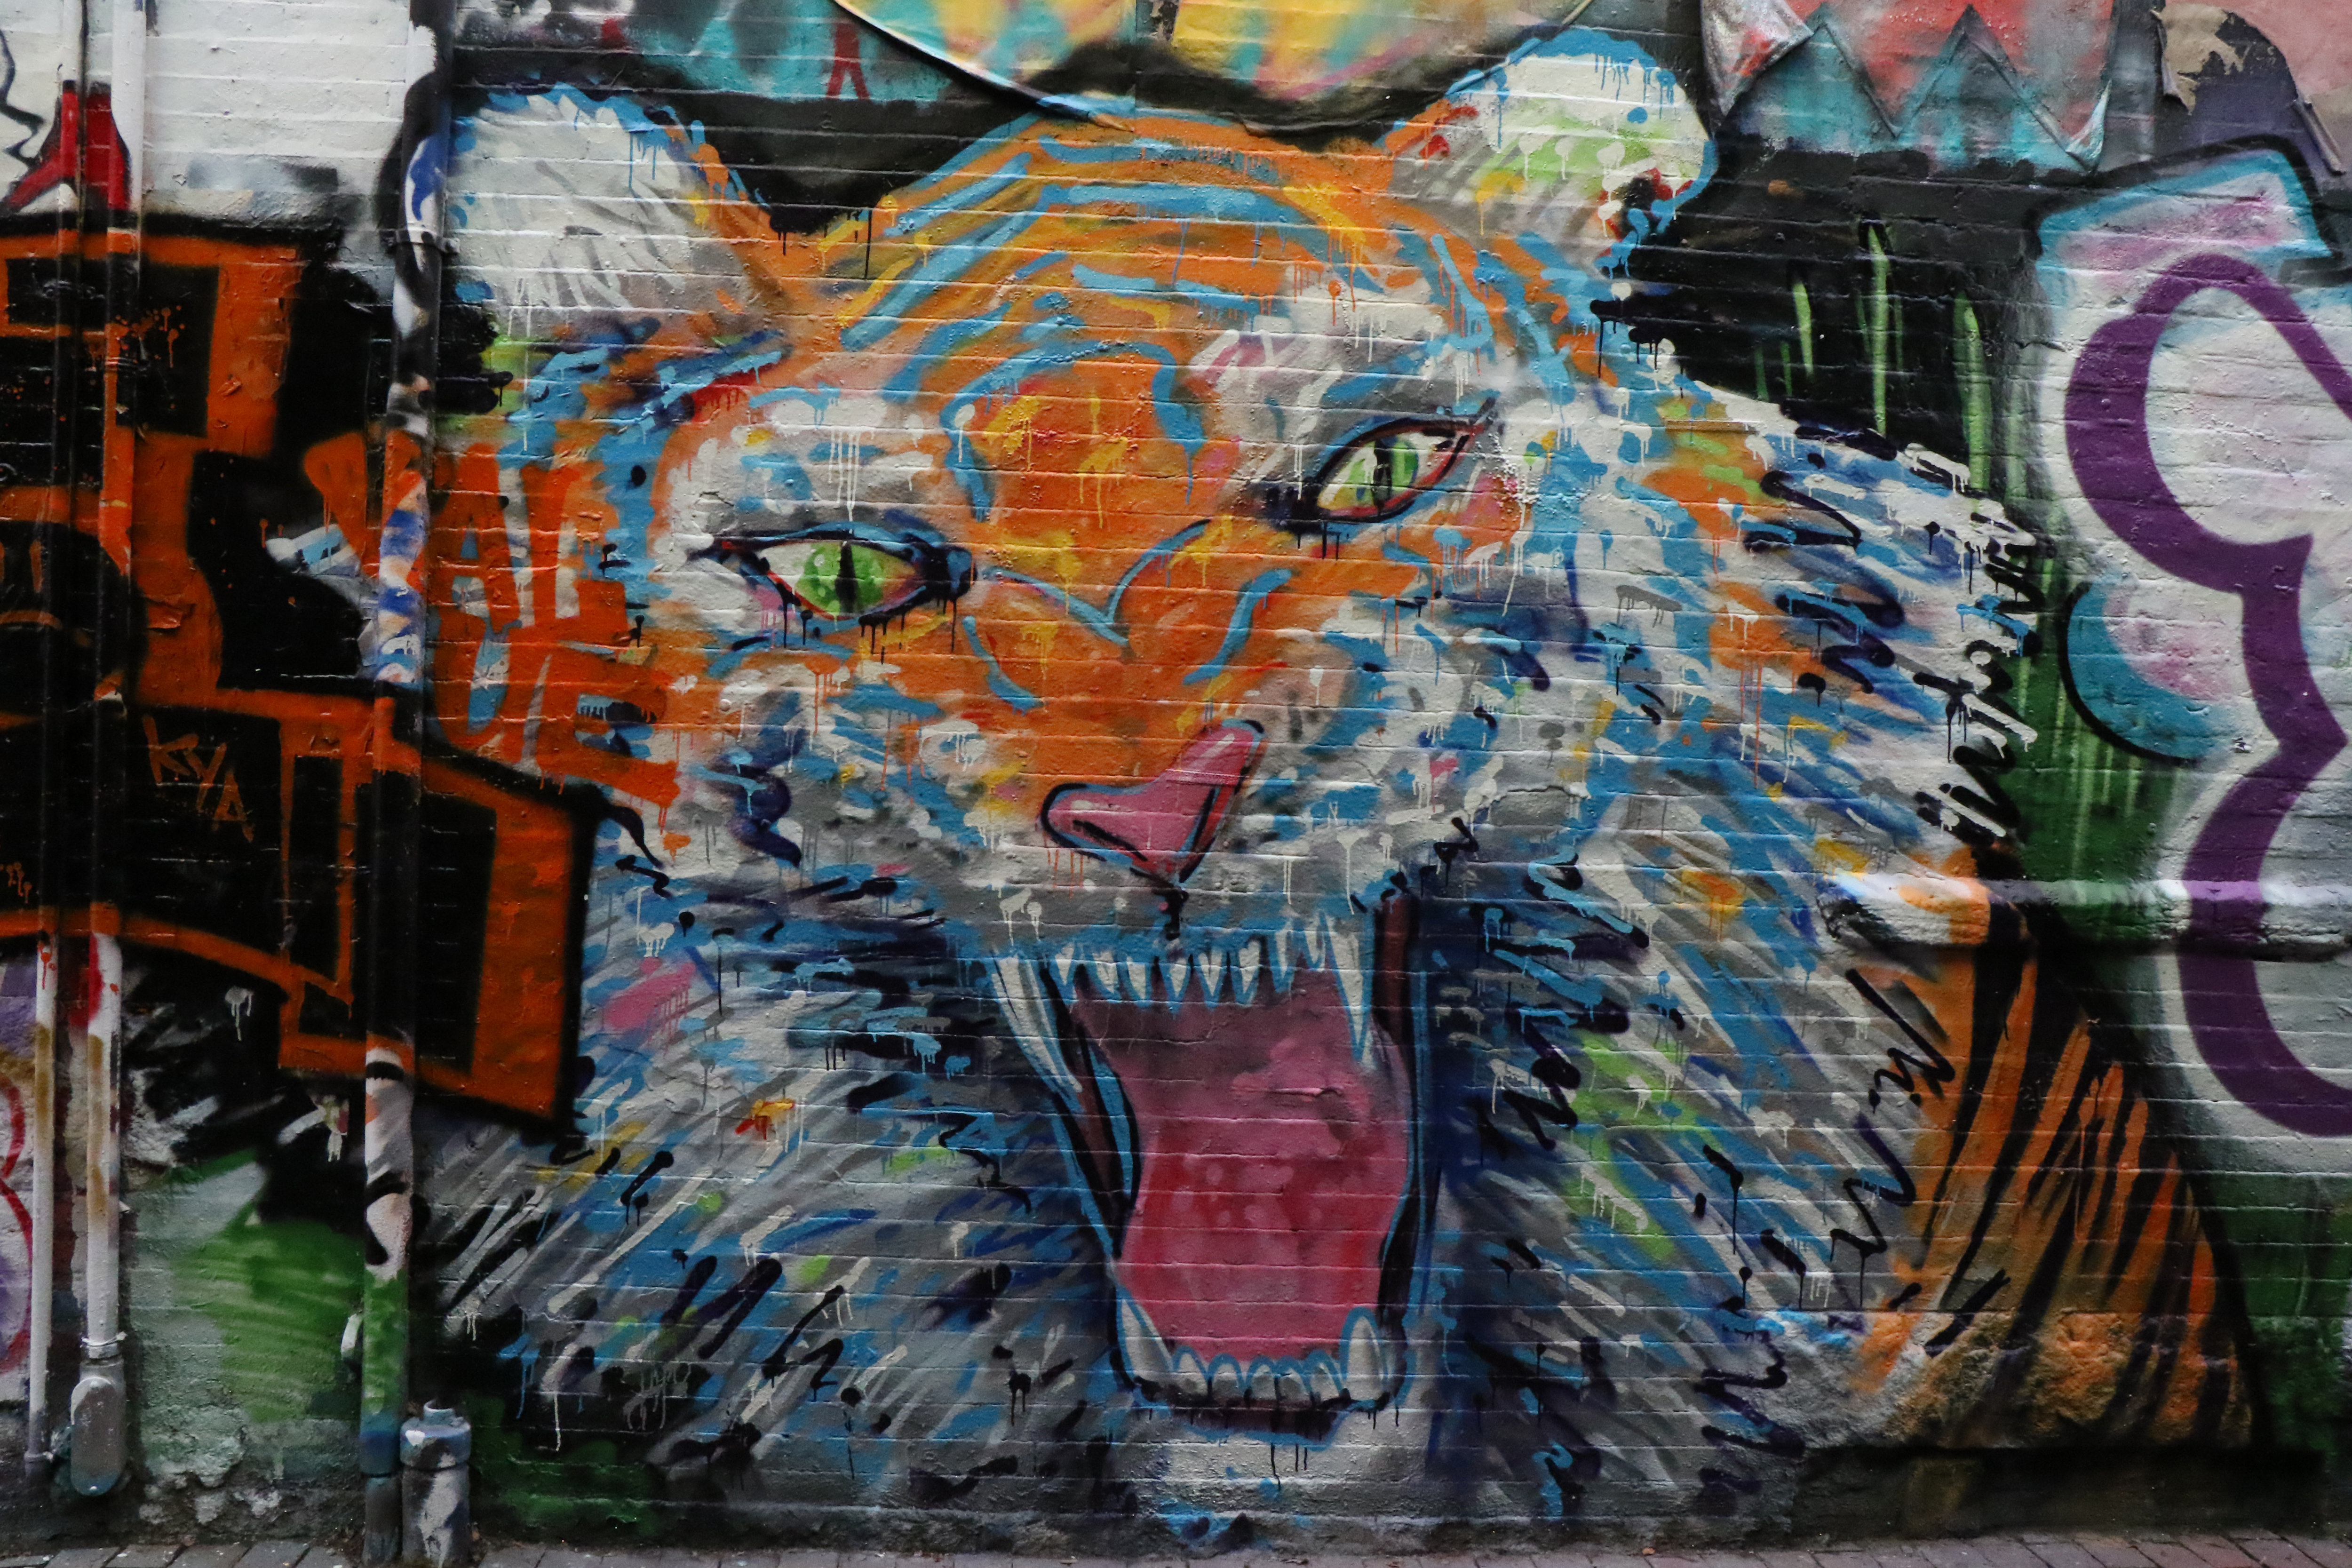 A sample photo of graffiti taken by the Canon EOS 7D Mark II.